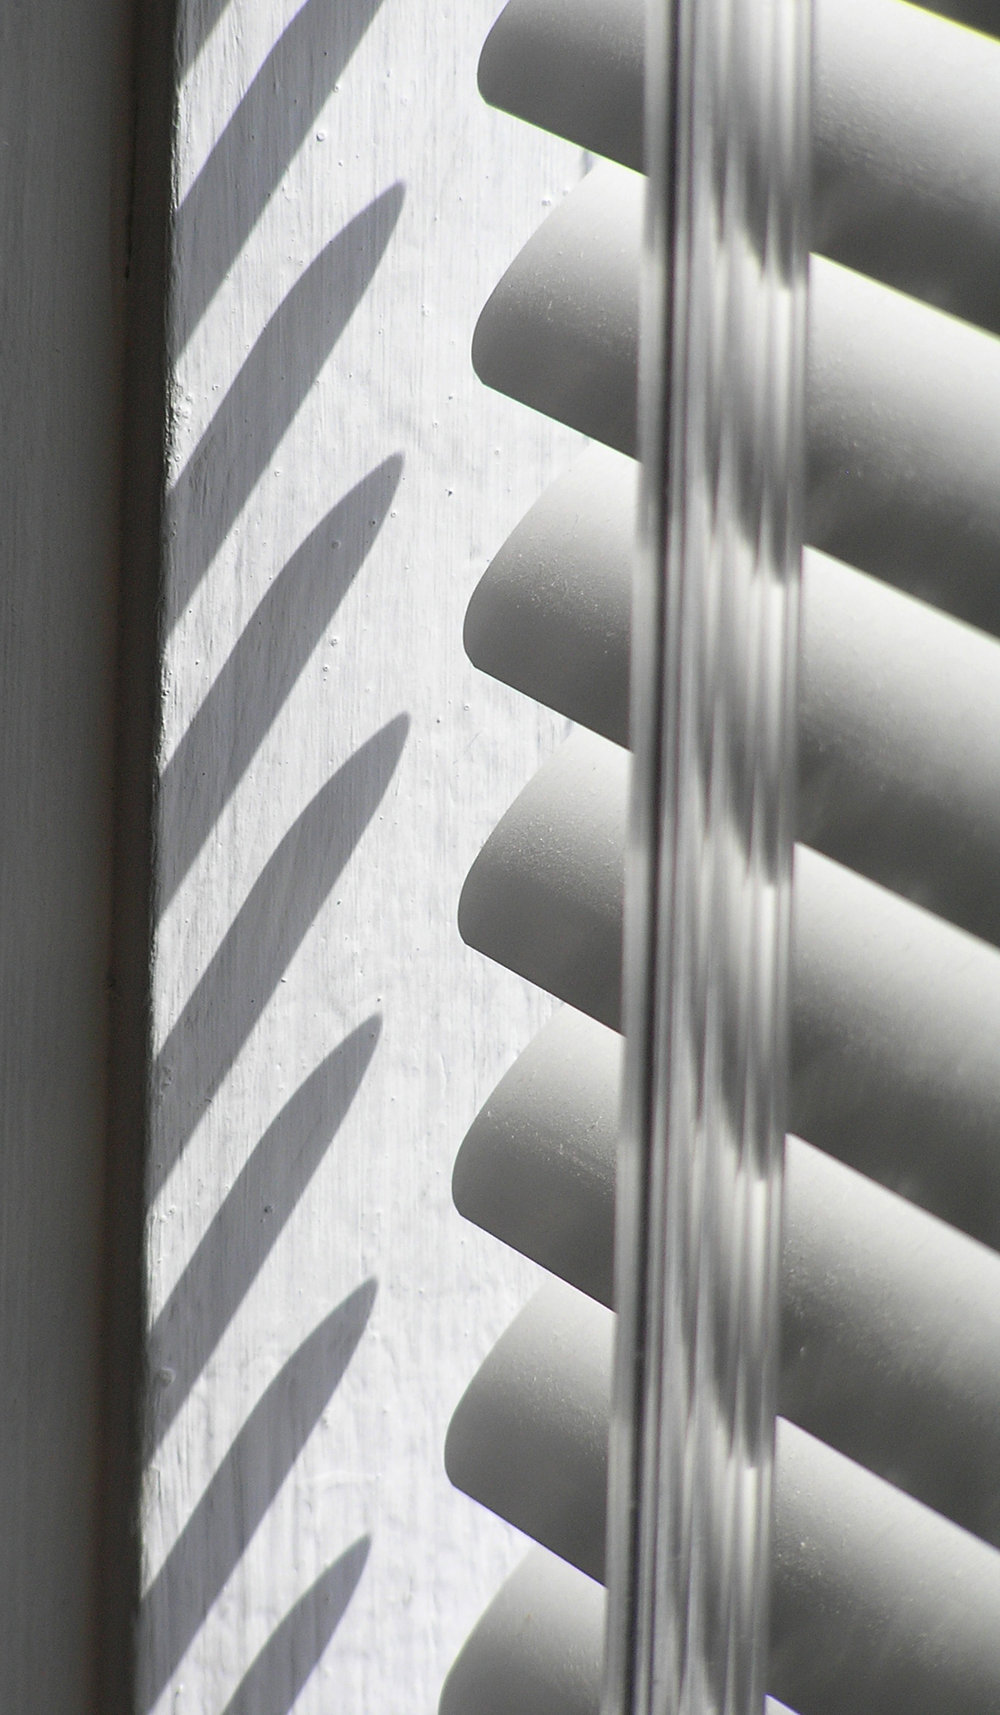 out my window-blinds shadows2-©john grimes.jpg